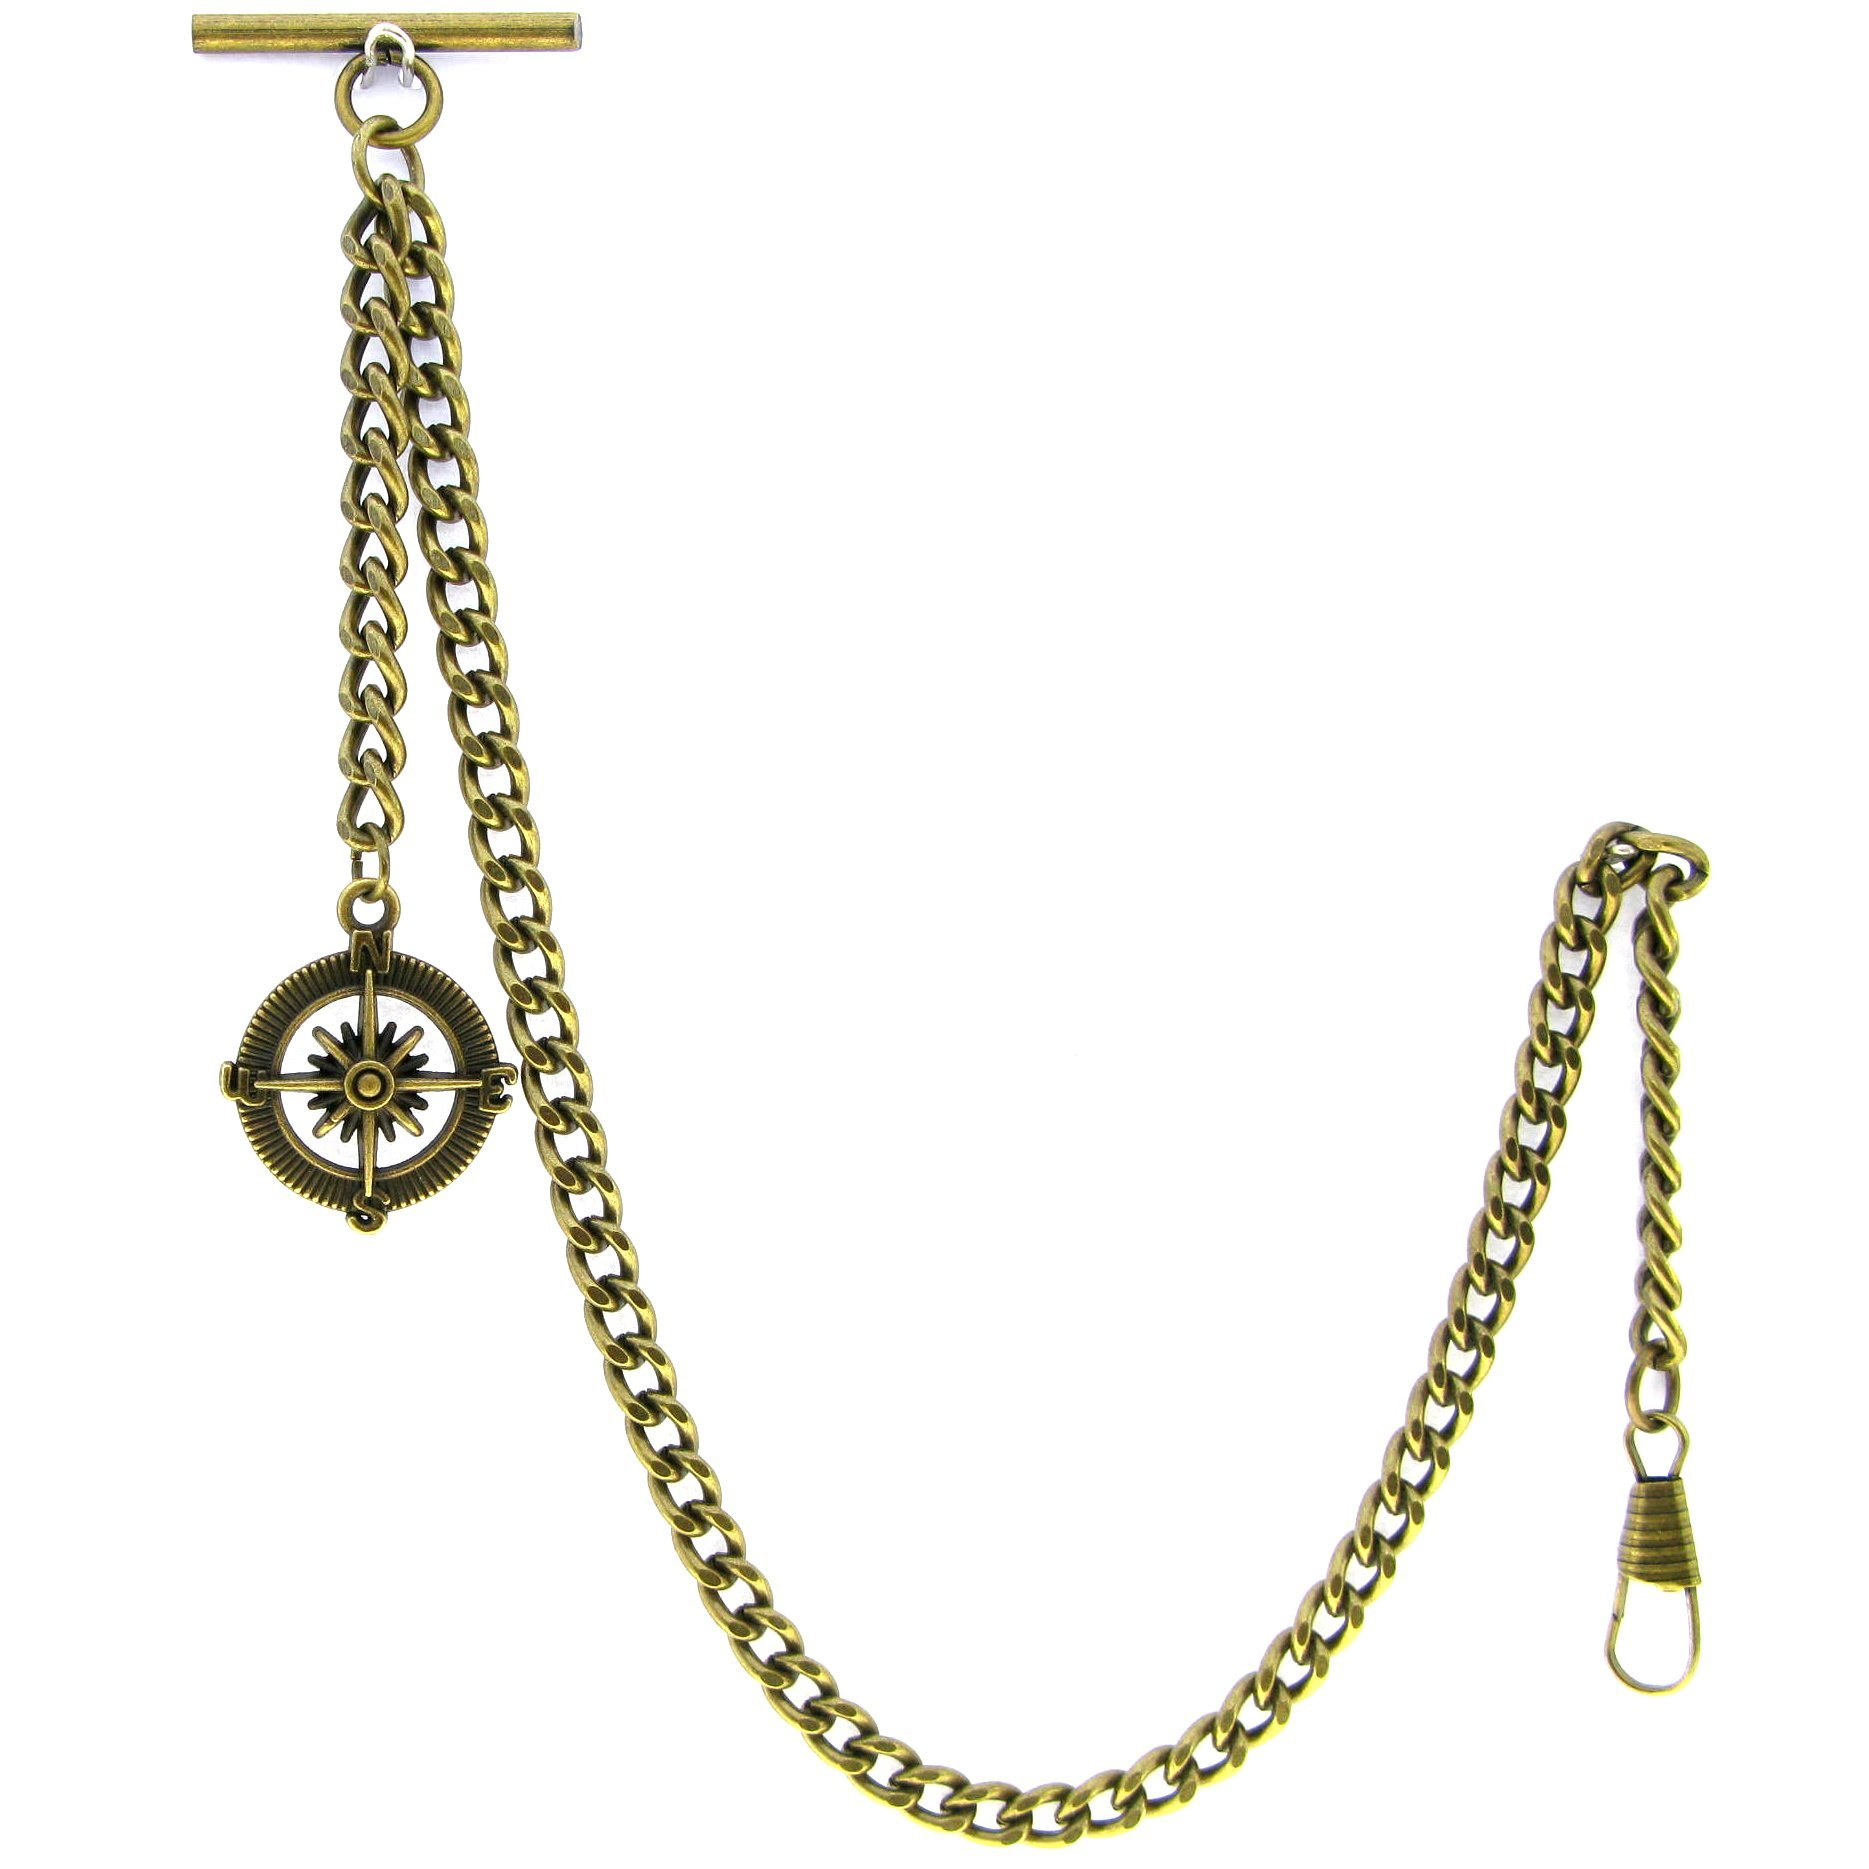 Albert Chain Pocket Watch Curb Link Chain Antique Brass Plating Fob T Bar AC09